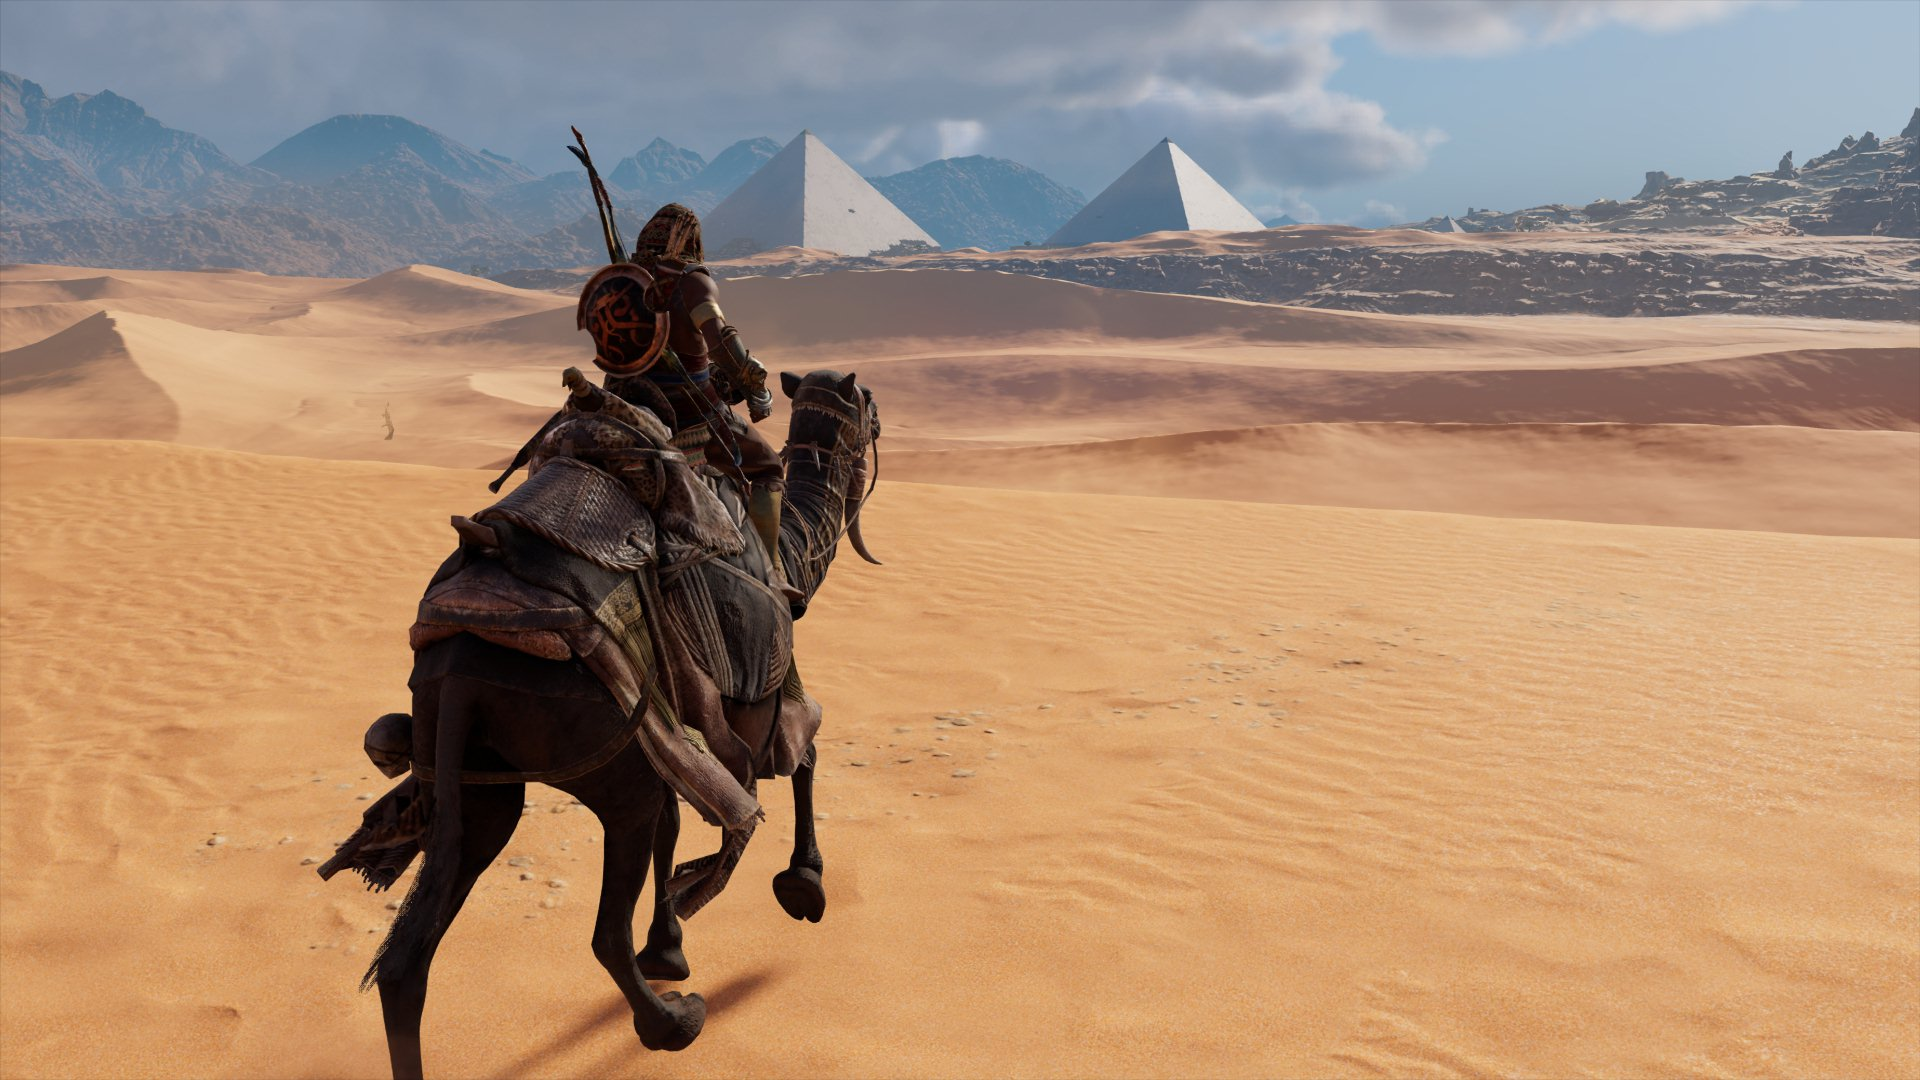 20180211010032.jpg - Assassin's Creed: Origins